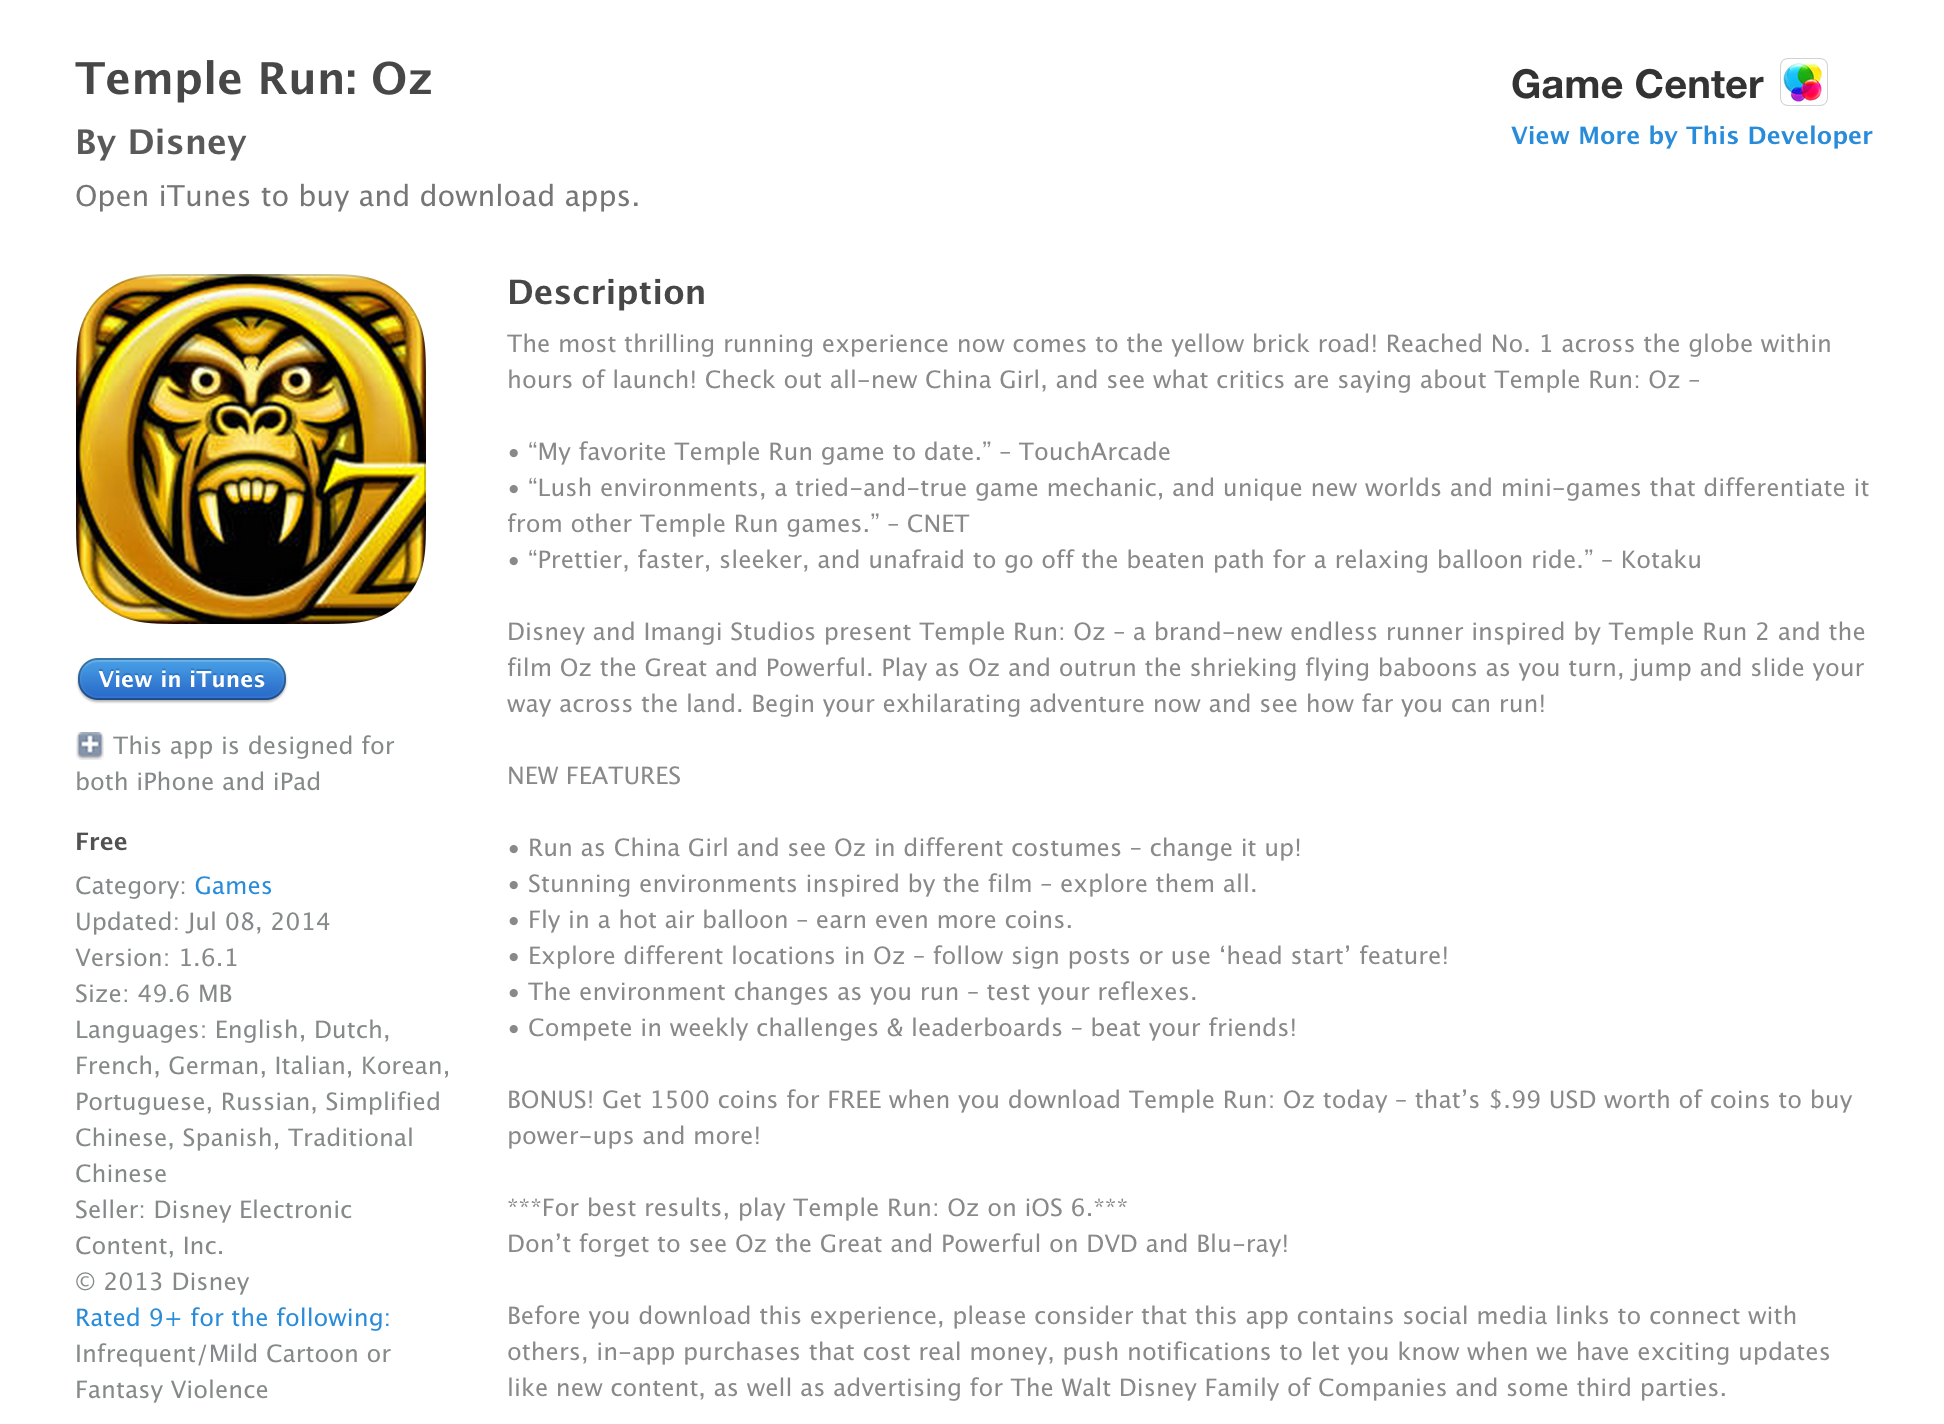 iTunes Free App of the Week - Temple Run: Oz ($1 99 value) - 9to5Toys